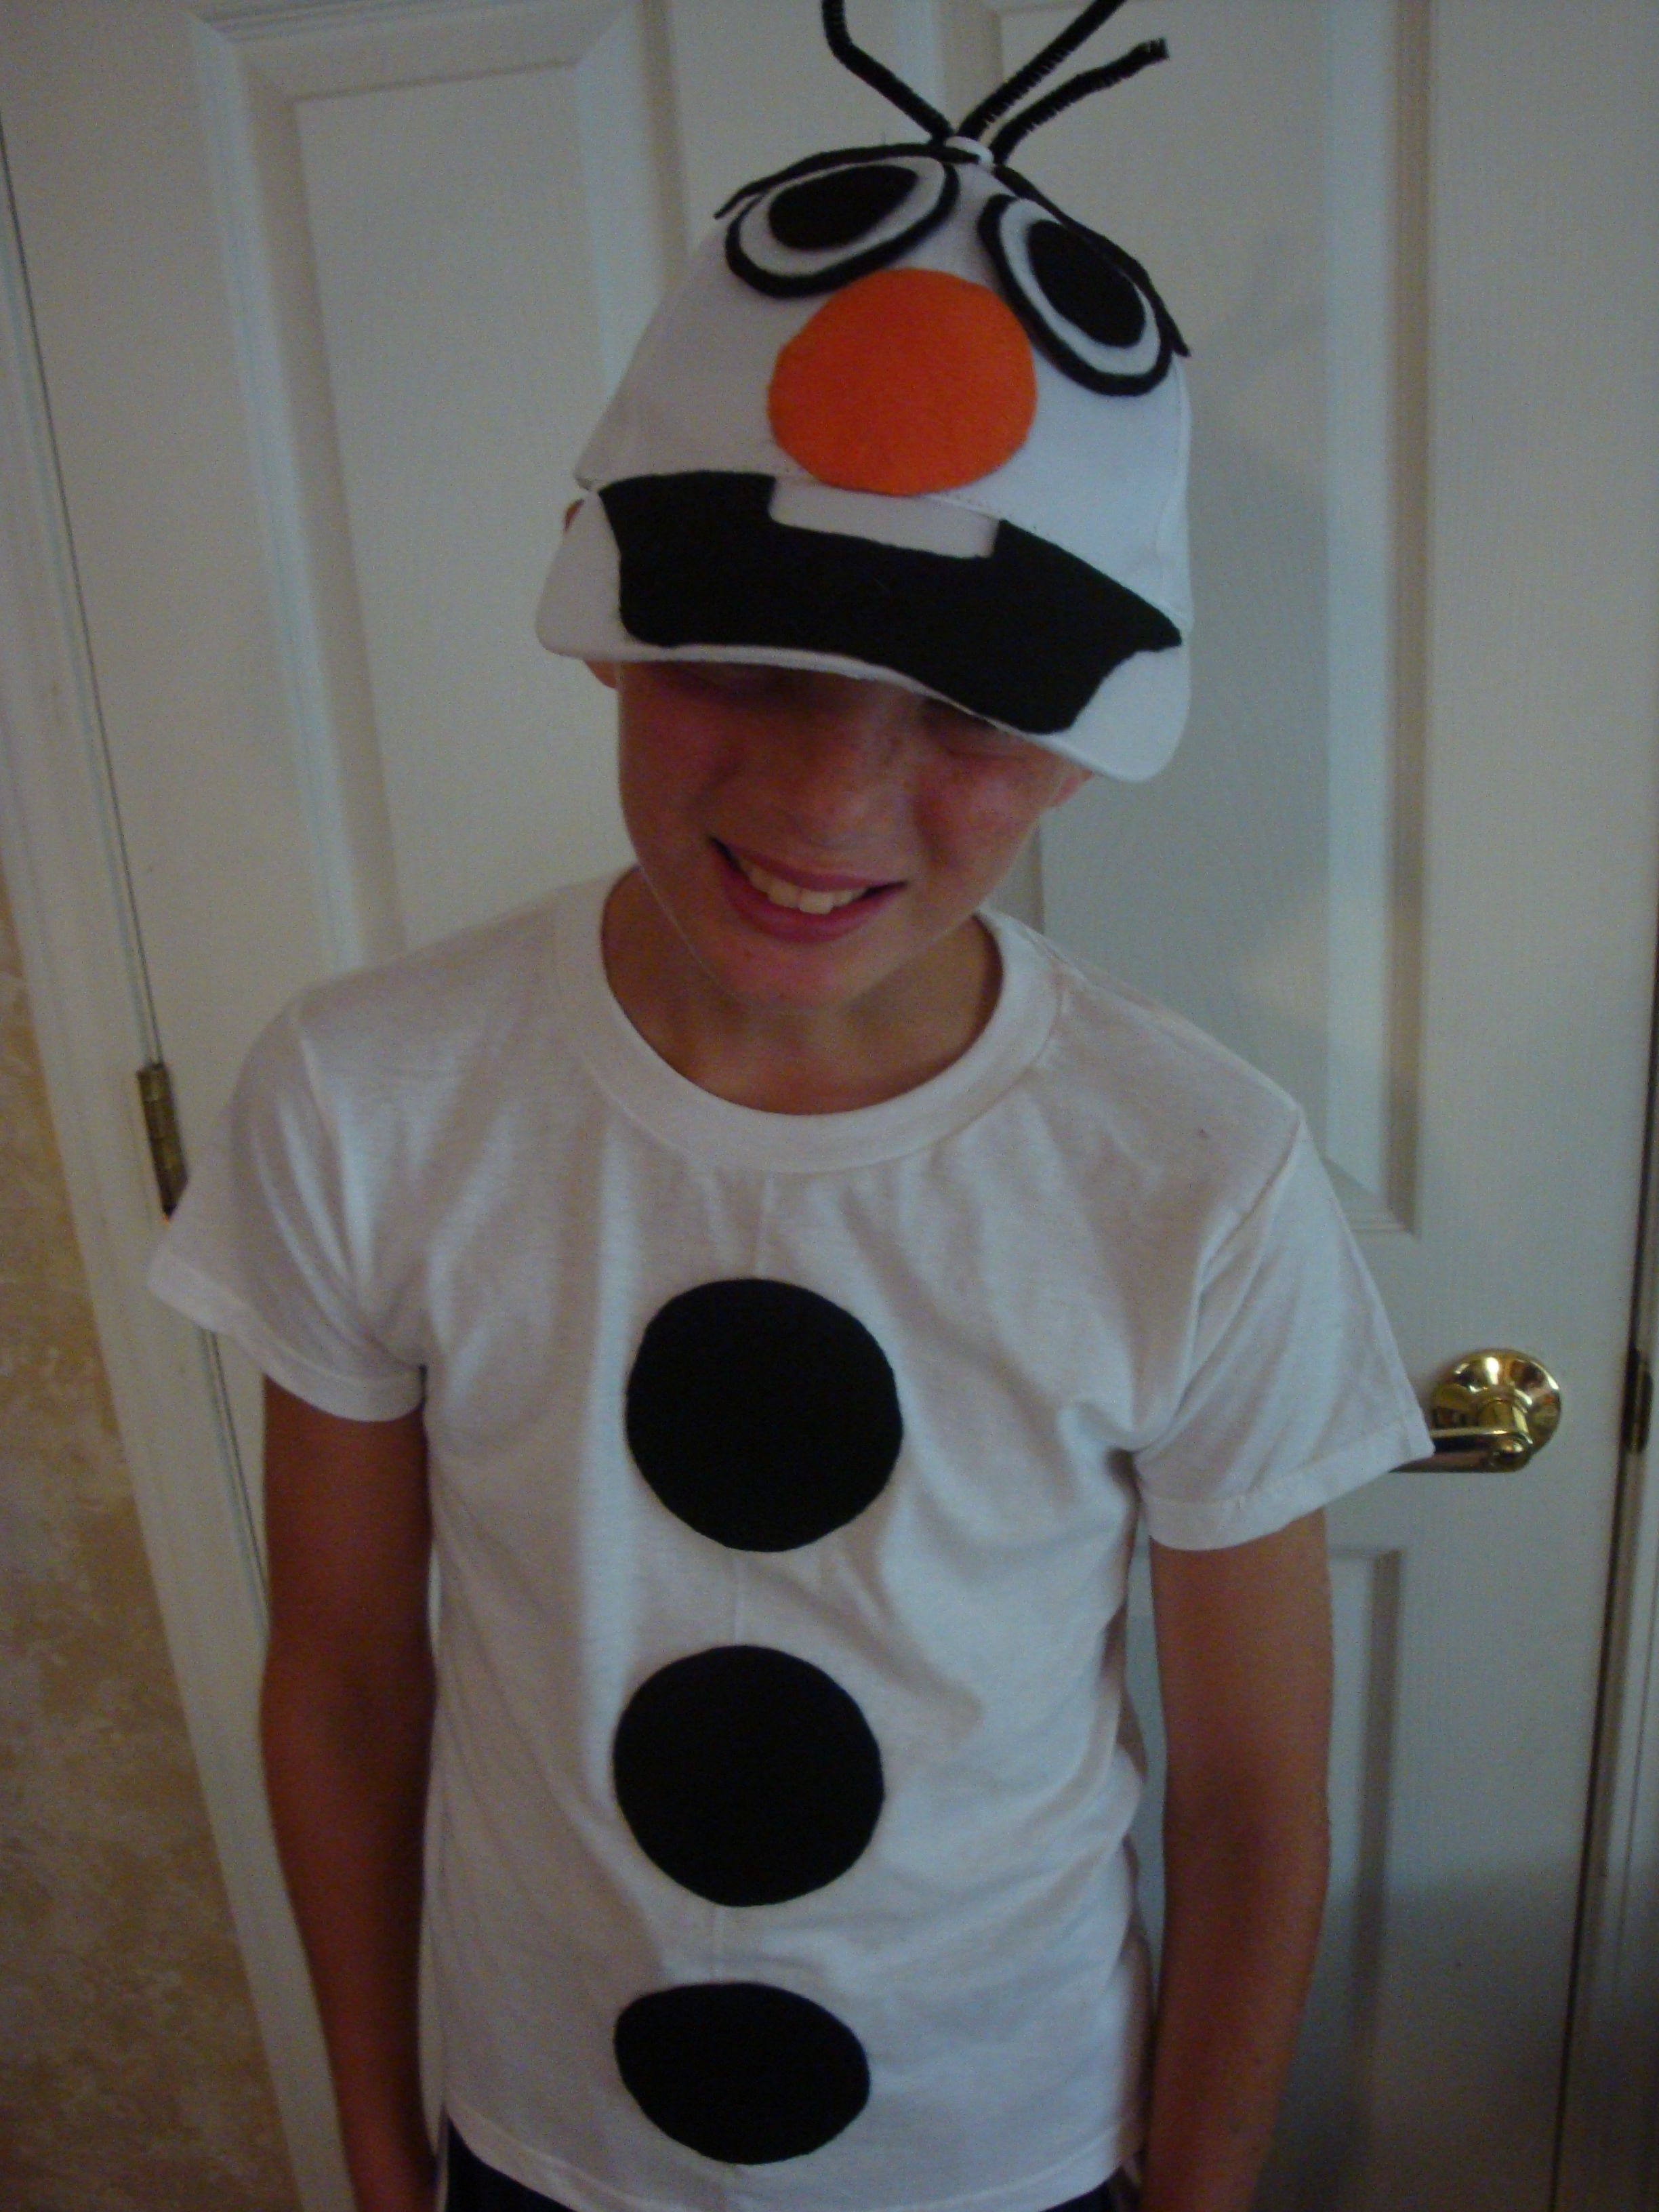 Olaf the Snowman Halloween Costume for Sale on #ebay #olaf #frozen # halloween & Olaf the Snowman Halloween Costume for Sale on #ebay #olaf #frozen ...